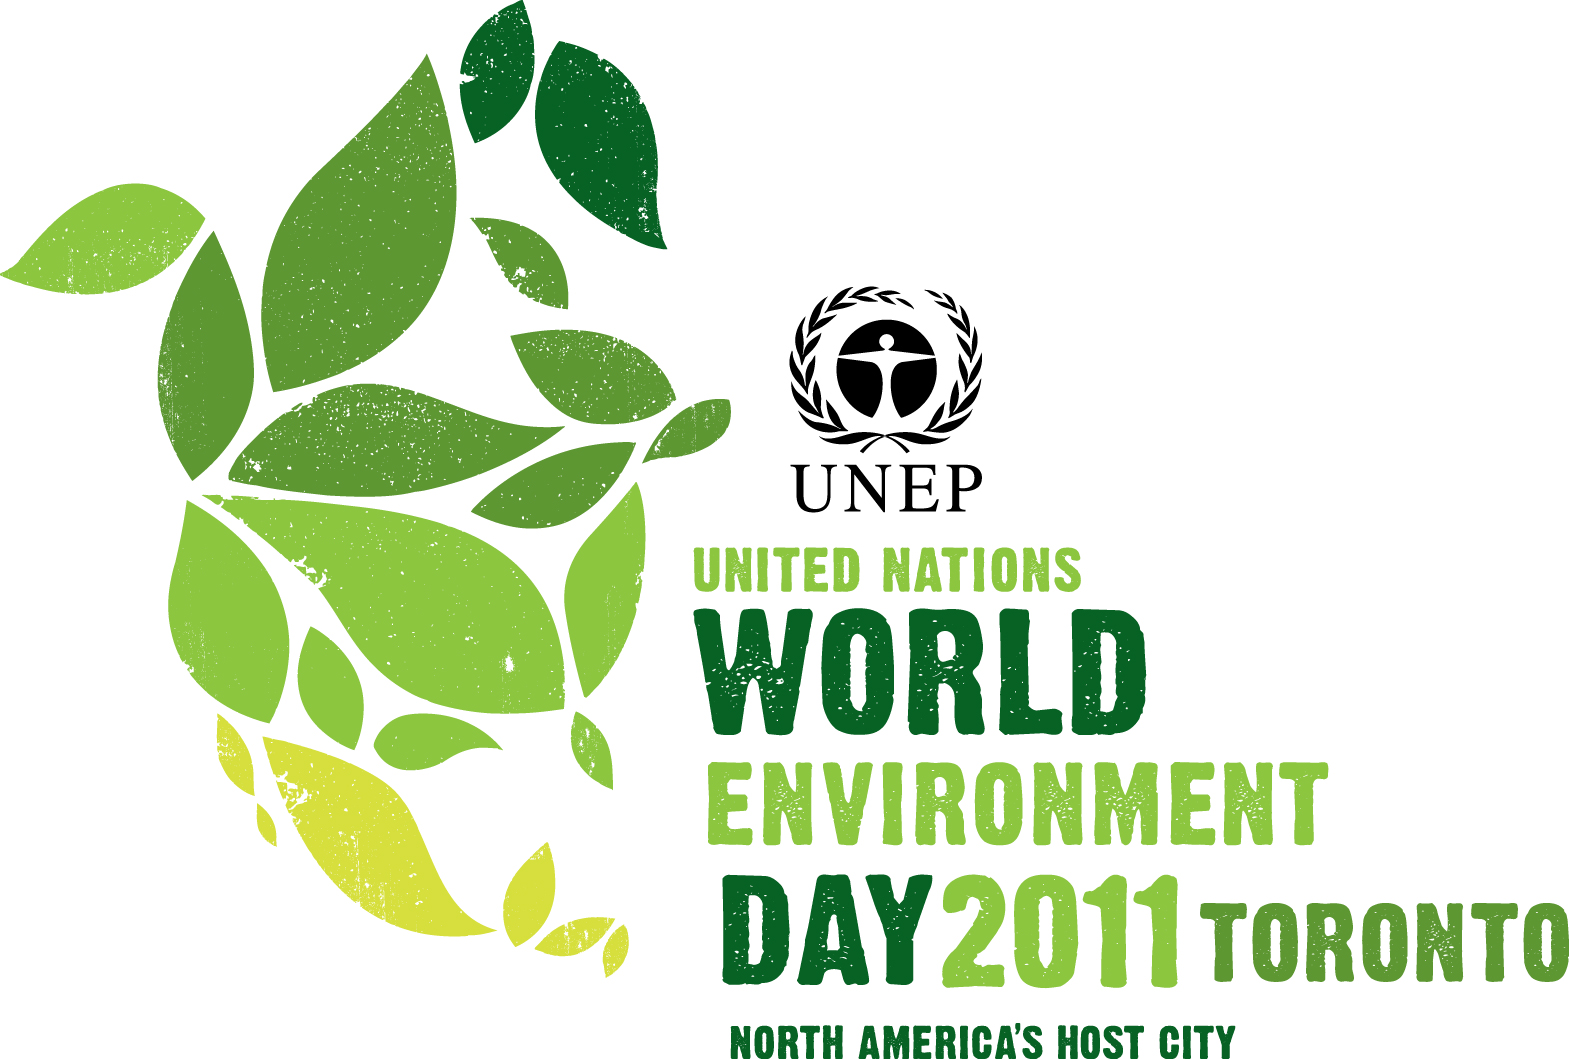 world environment day 2011 essays World environment day essay sample pages: 5 world environment day was a day created specifically to raise global awareness and taking positive environmental.